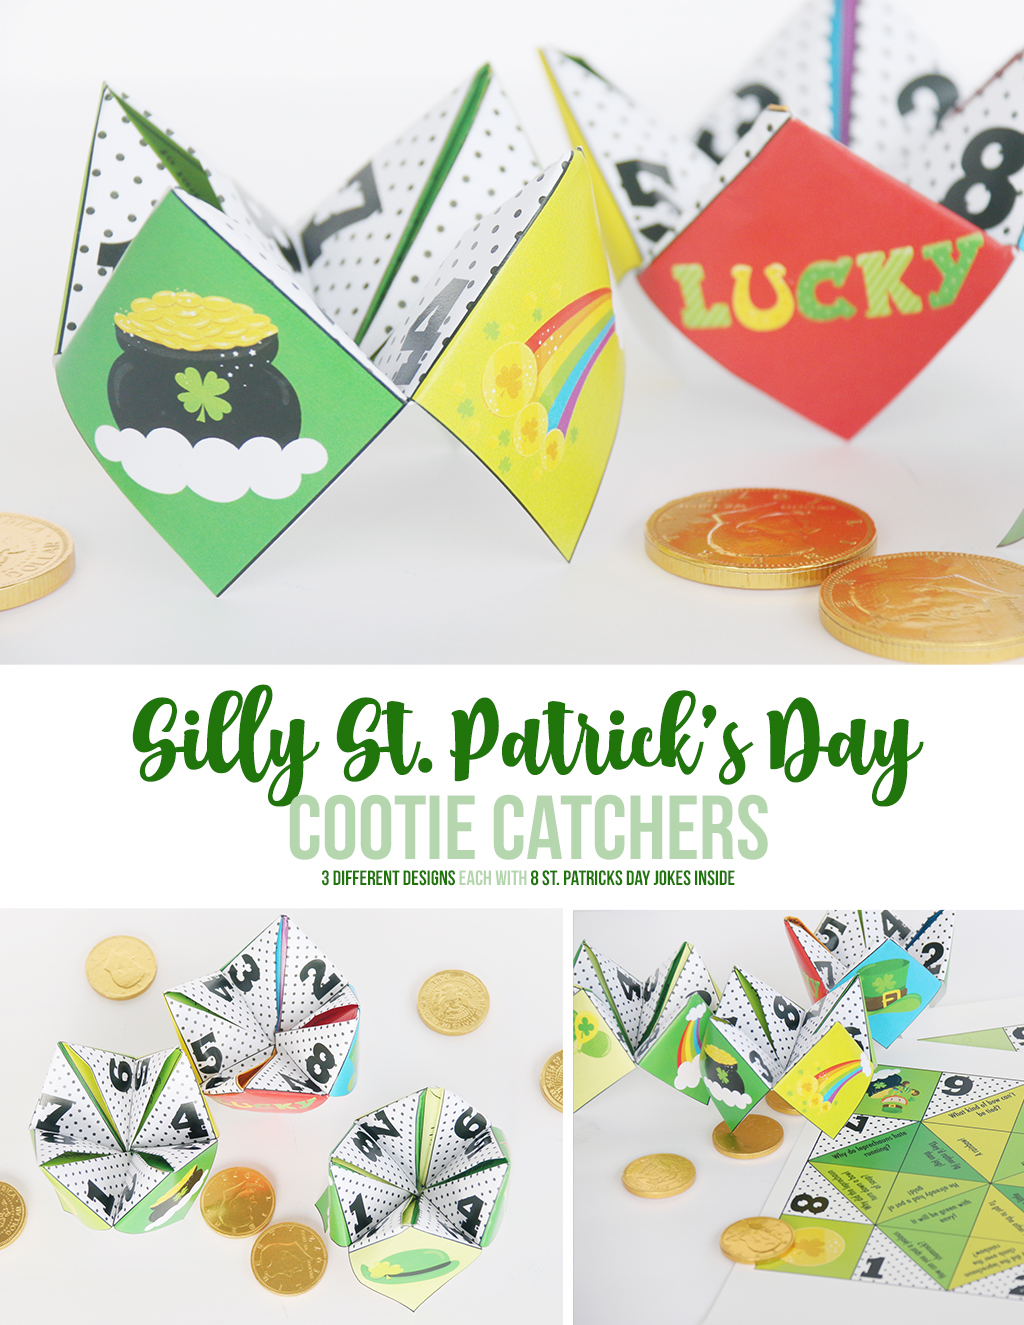 Silly St. Patrick's Day Cootie Catchers printables